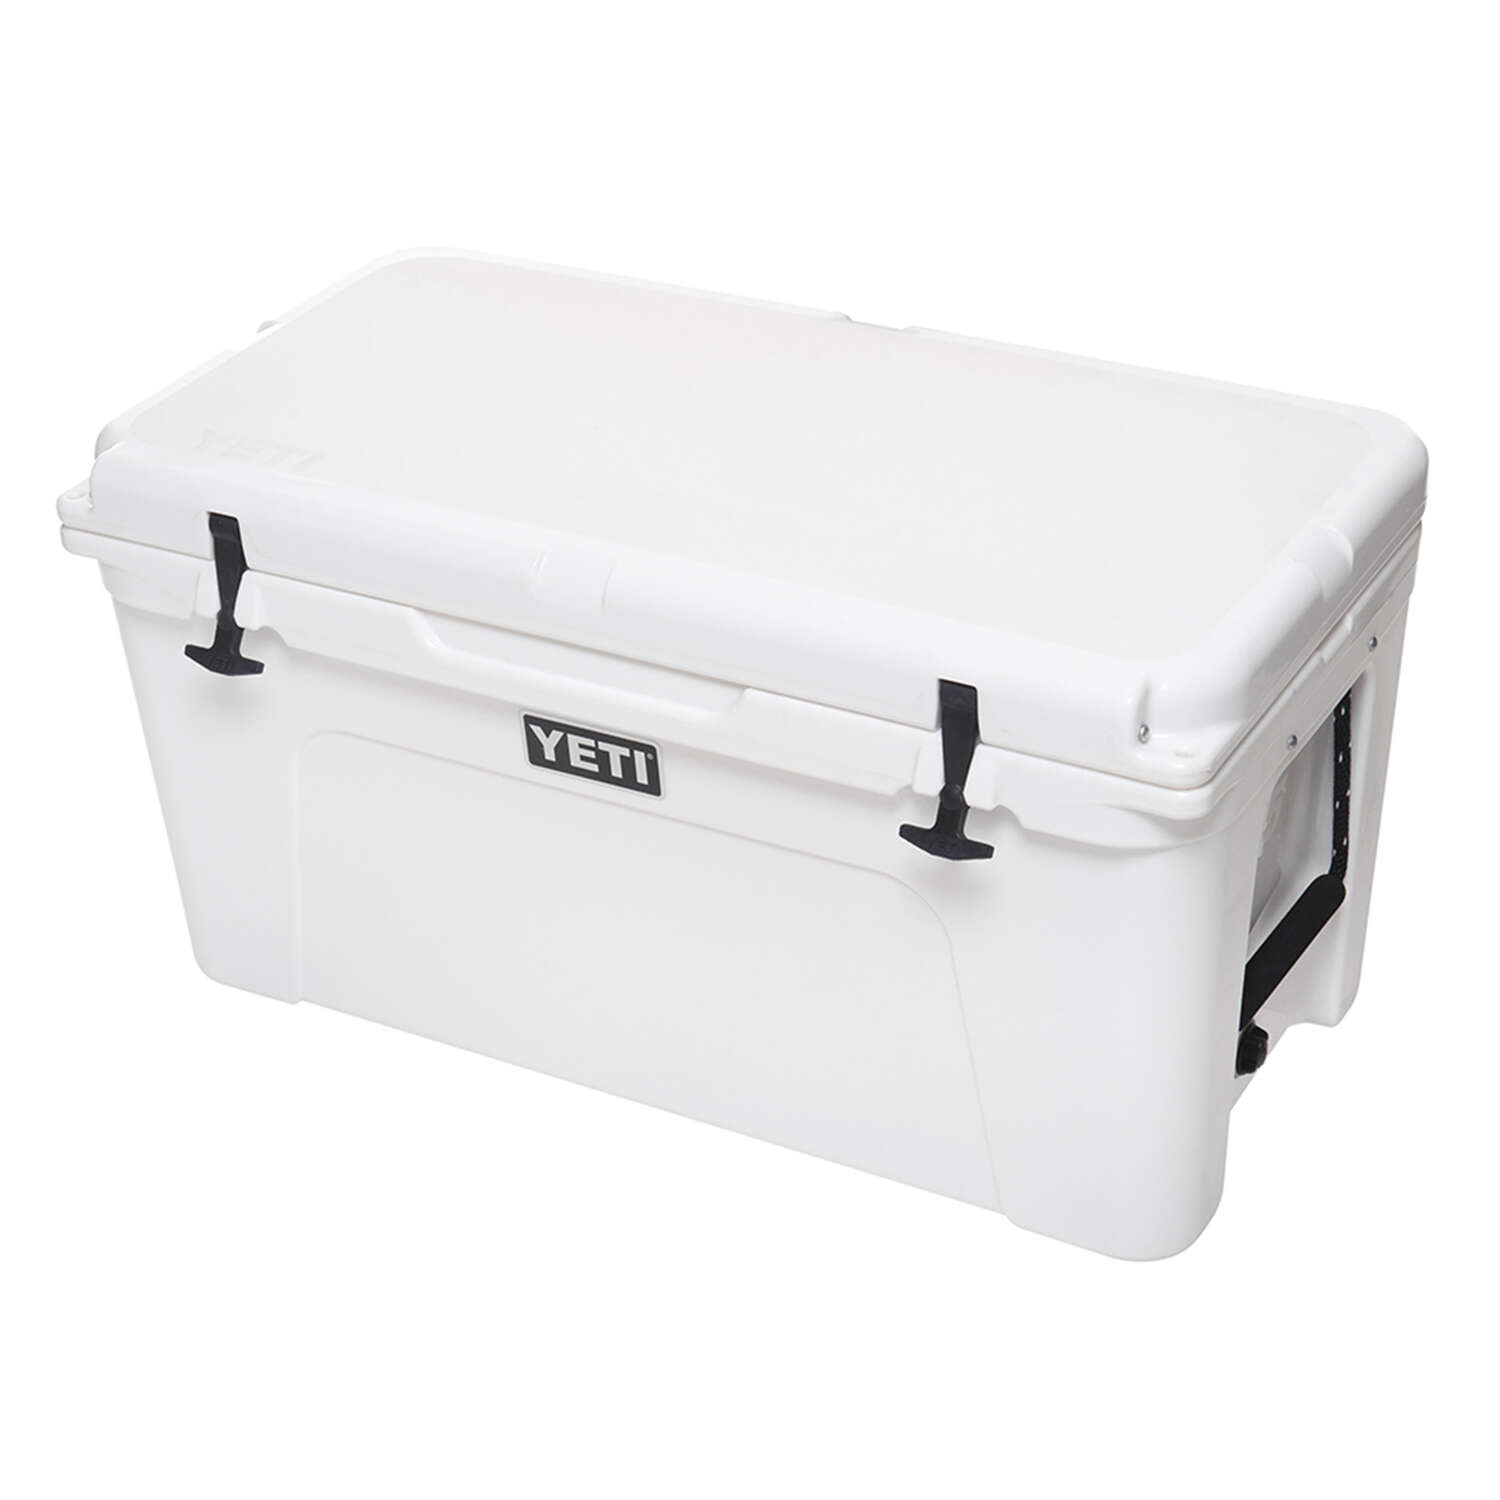 YETI  Tundra 65  Cooler  39 can White